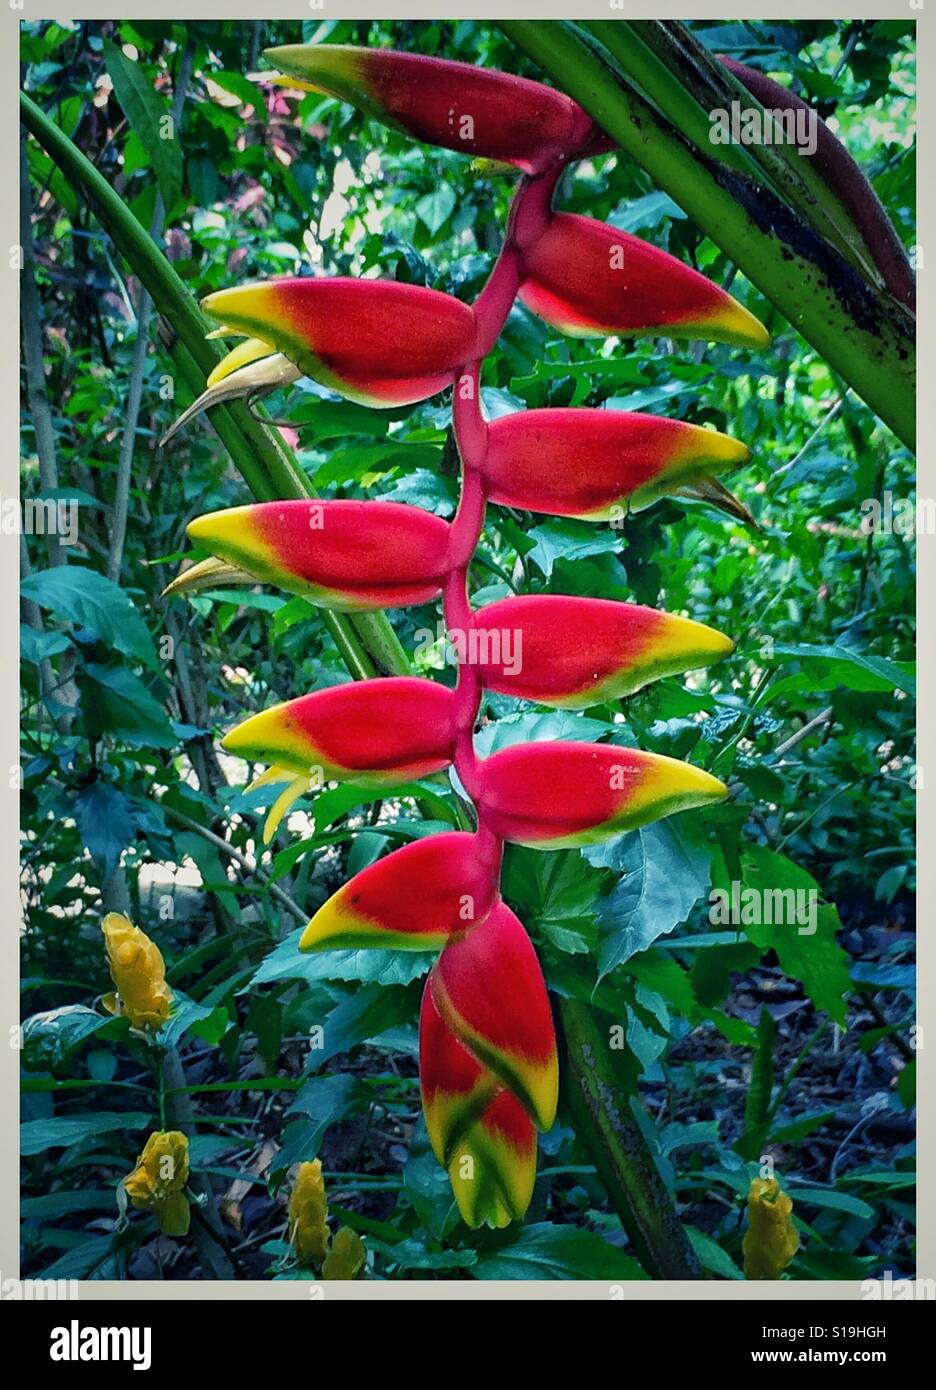 Tropical Heliconia plant with vibrant red and yellow blooms against green leaf background, Heliconia rostrata - Stock Image